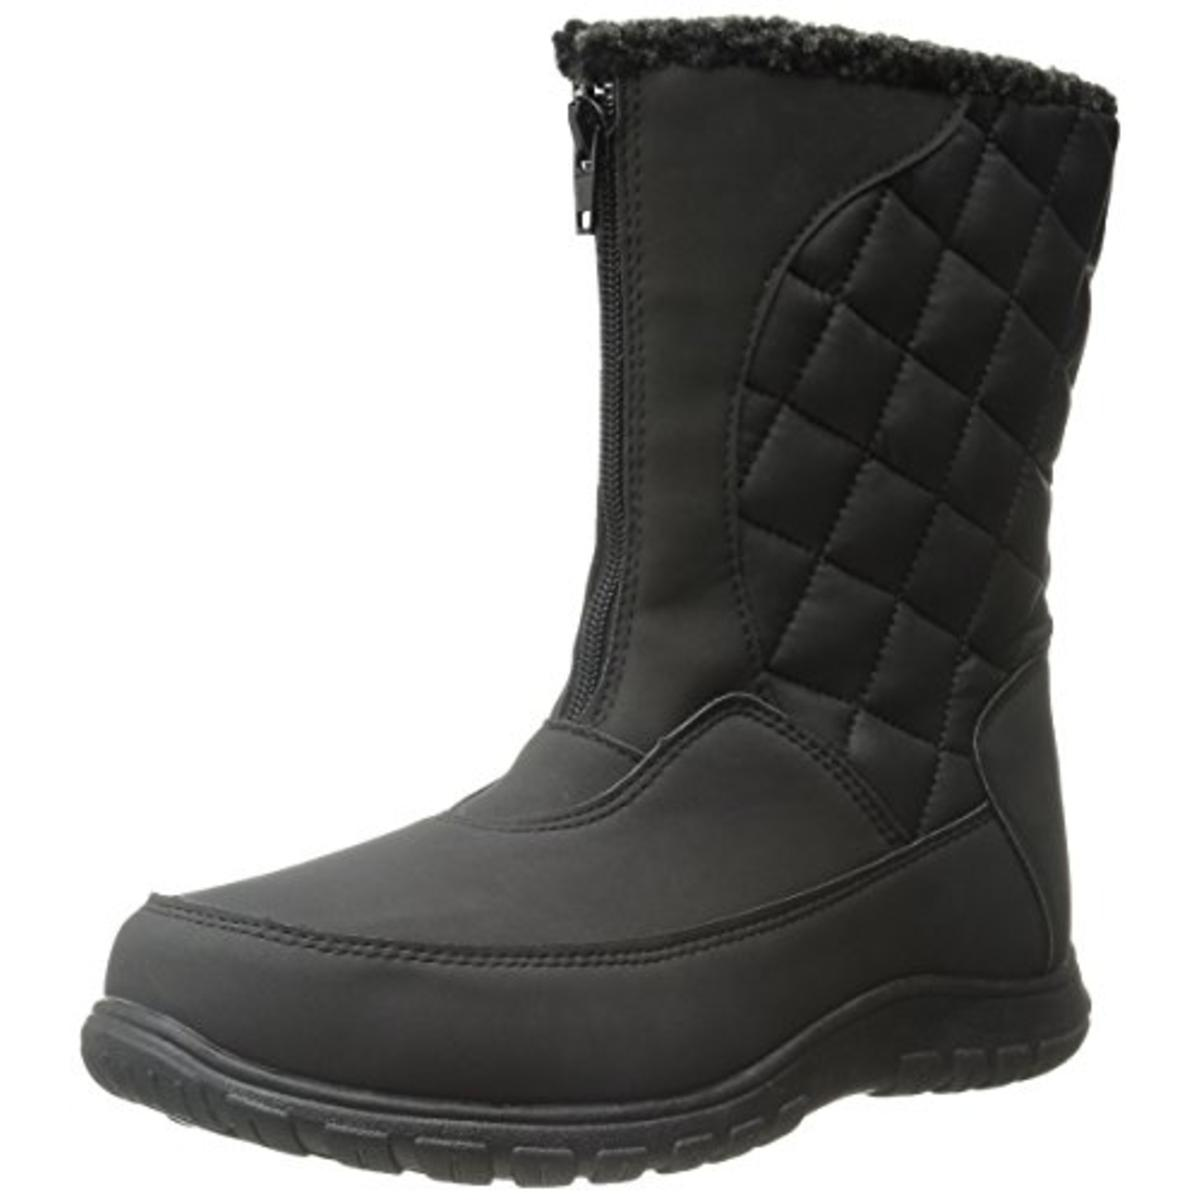 Totes Womens Amanda Faux Leather Waterproof Winter Boots